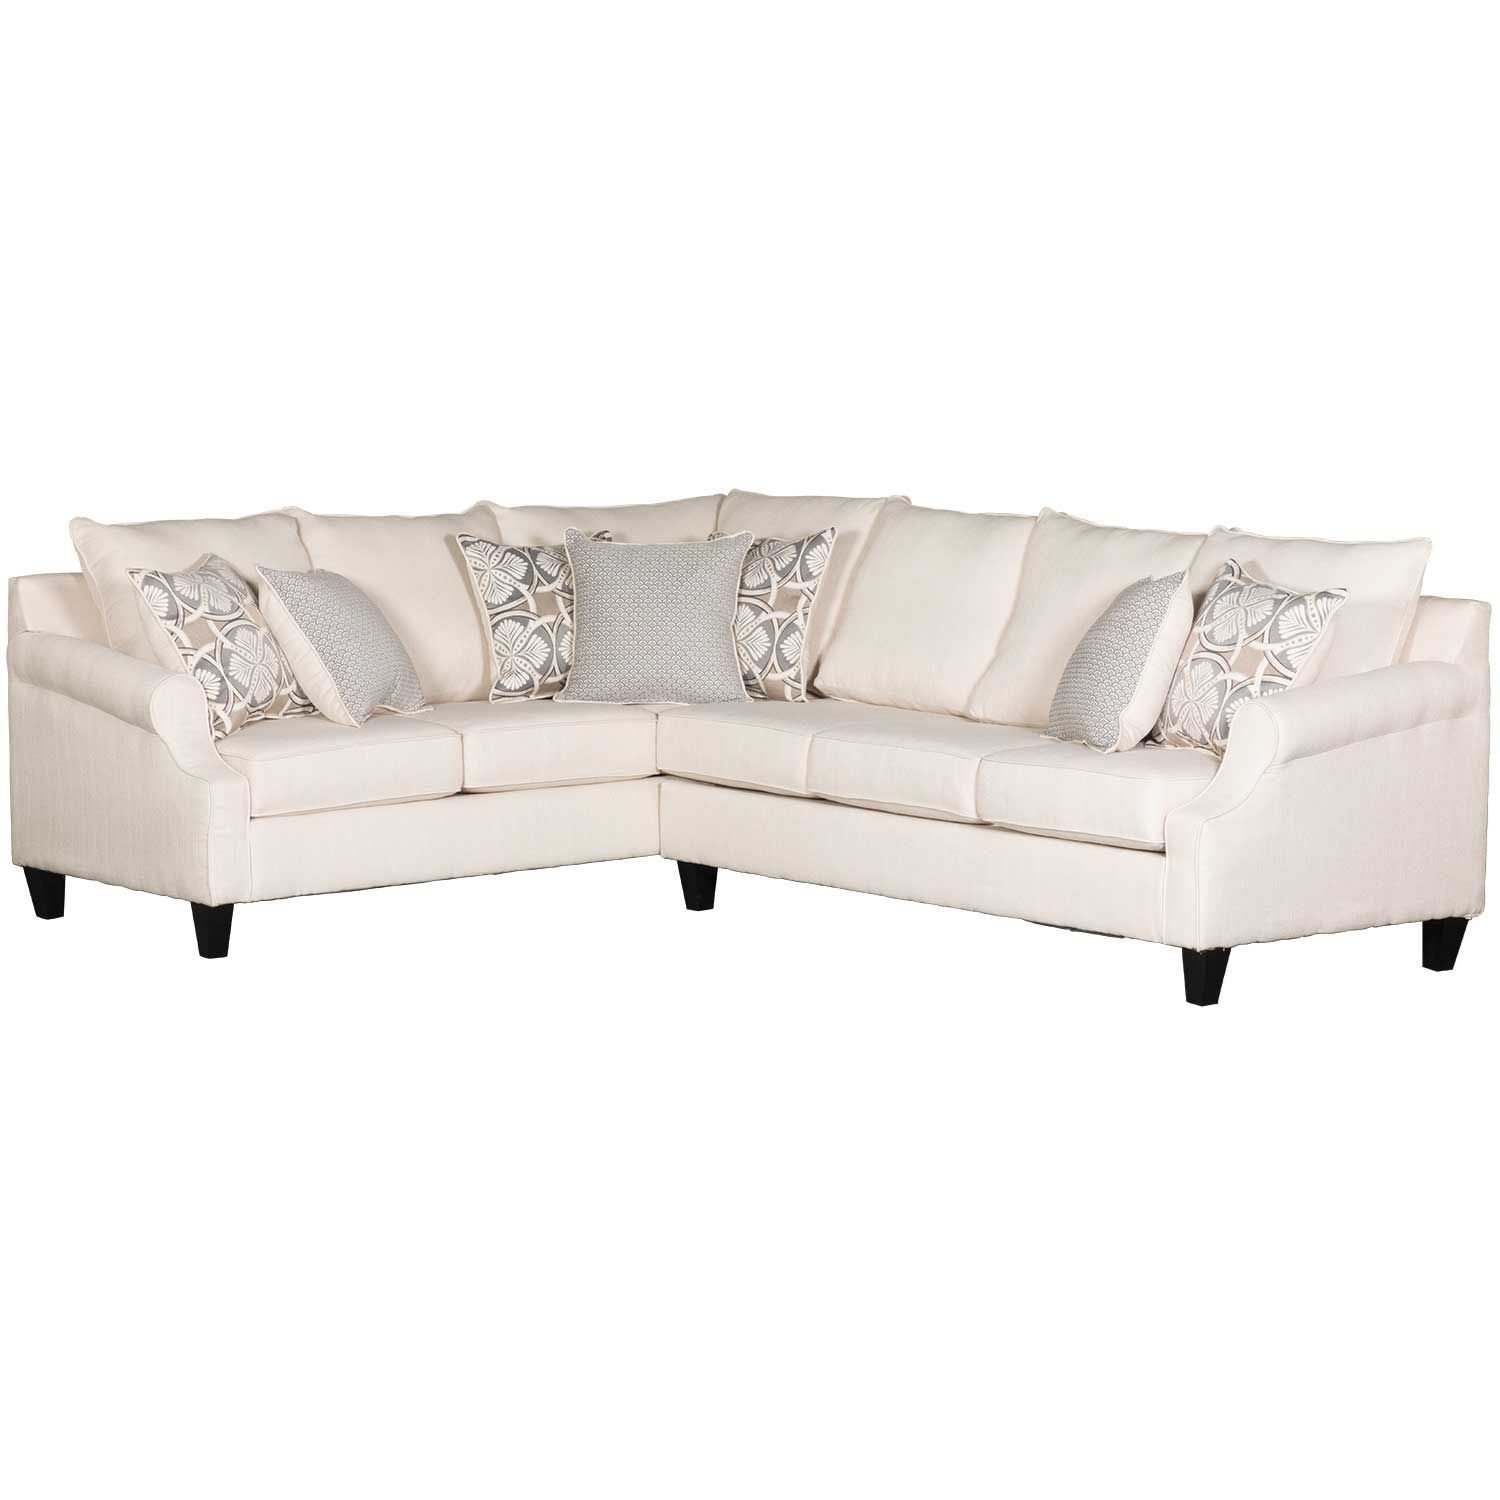 Best Amplify Beige 2 Piece Laf Sofa Chaise Sectional Cream 400 x 300